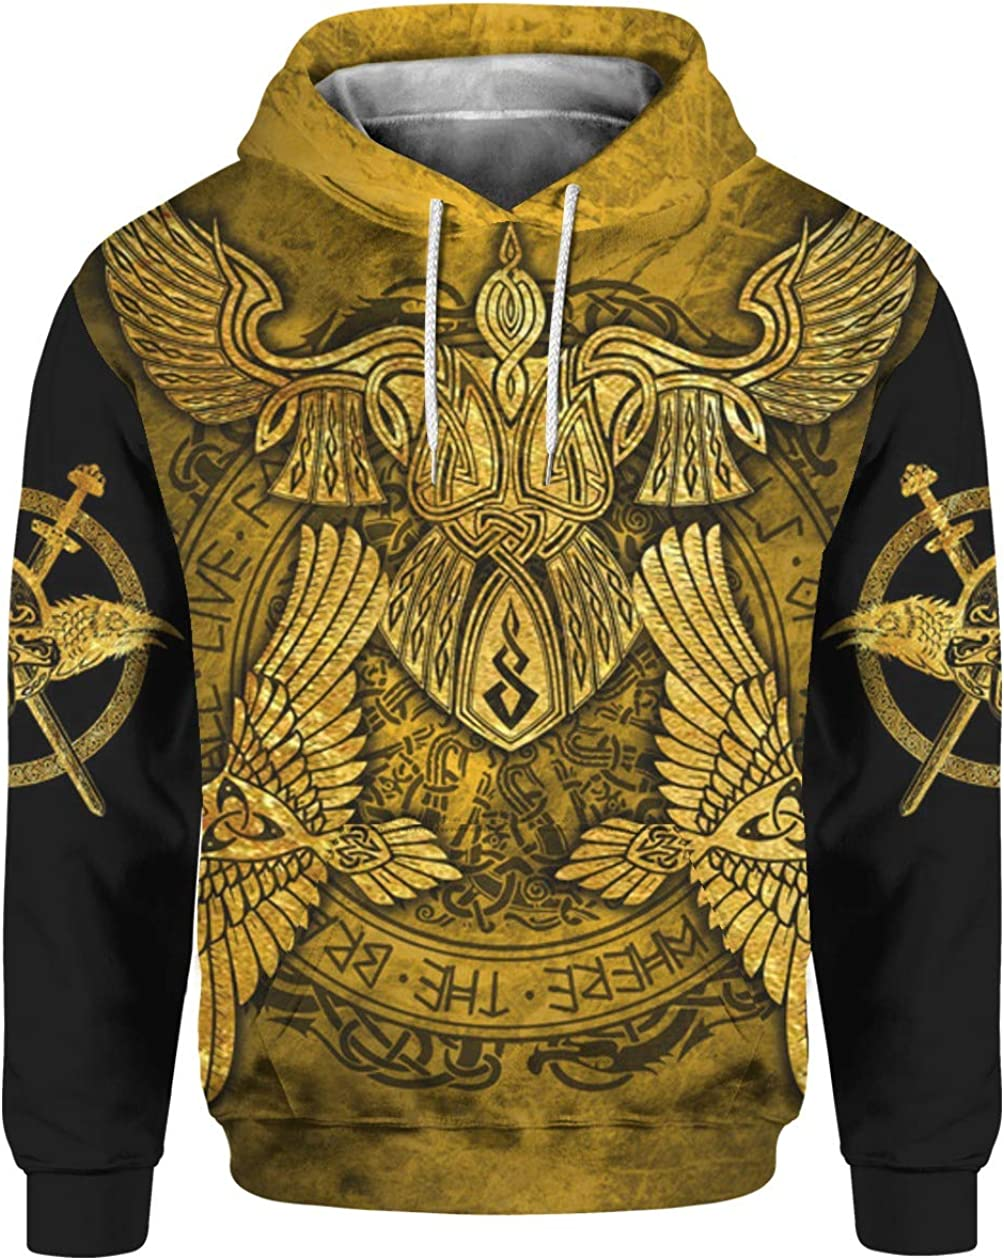 Viking Odin Gold 3D All Over Sublimation Printing Shirt